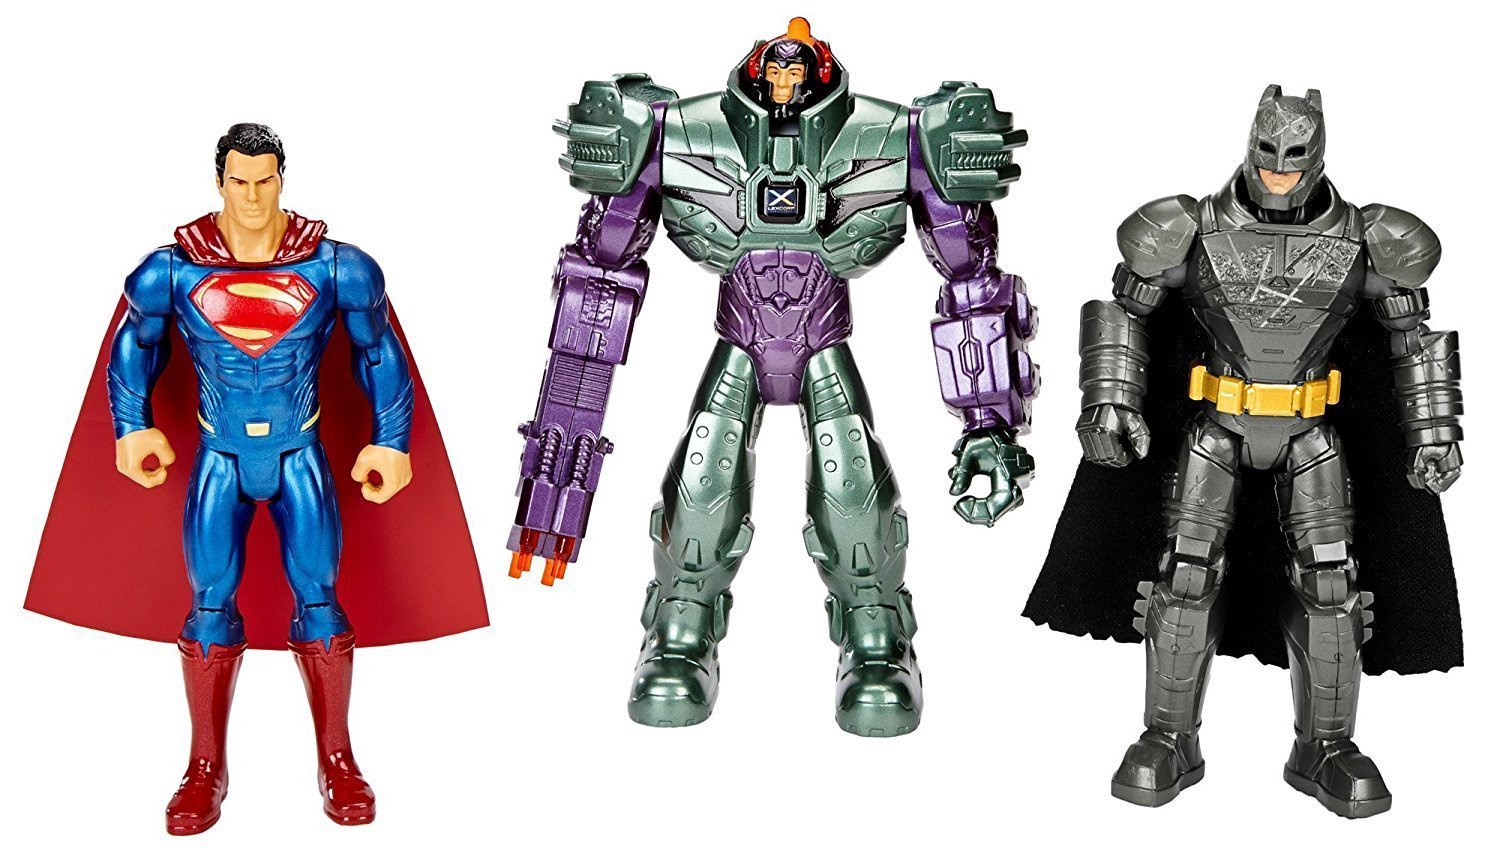 BATMAN V 12 SUPERMAN 3 PACK